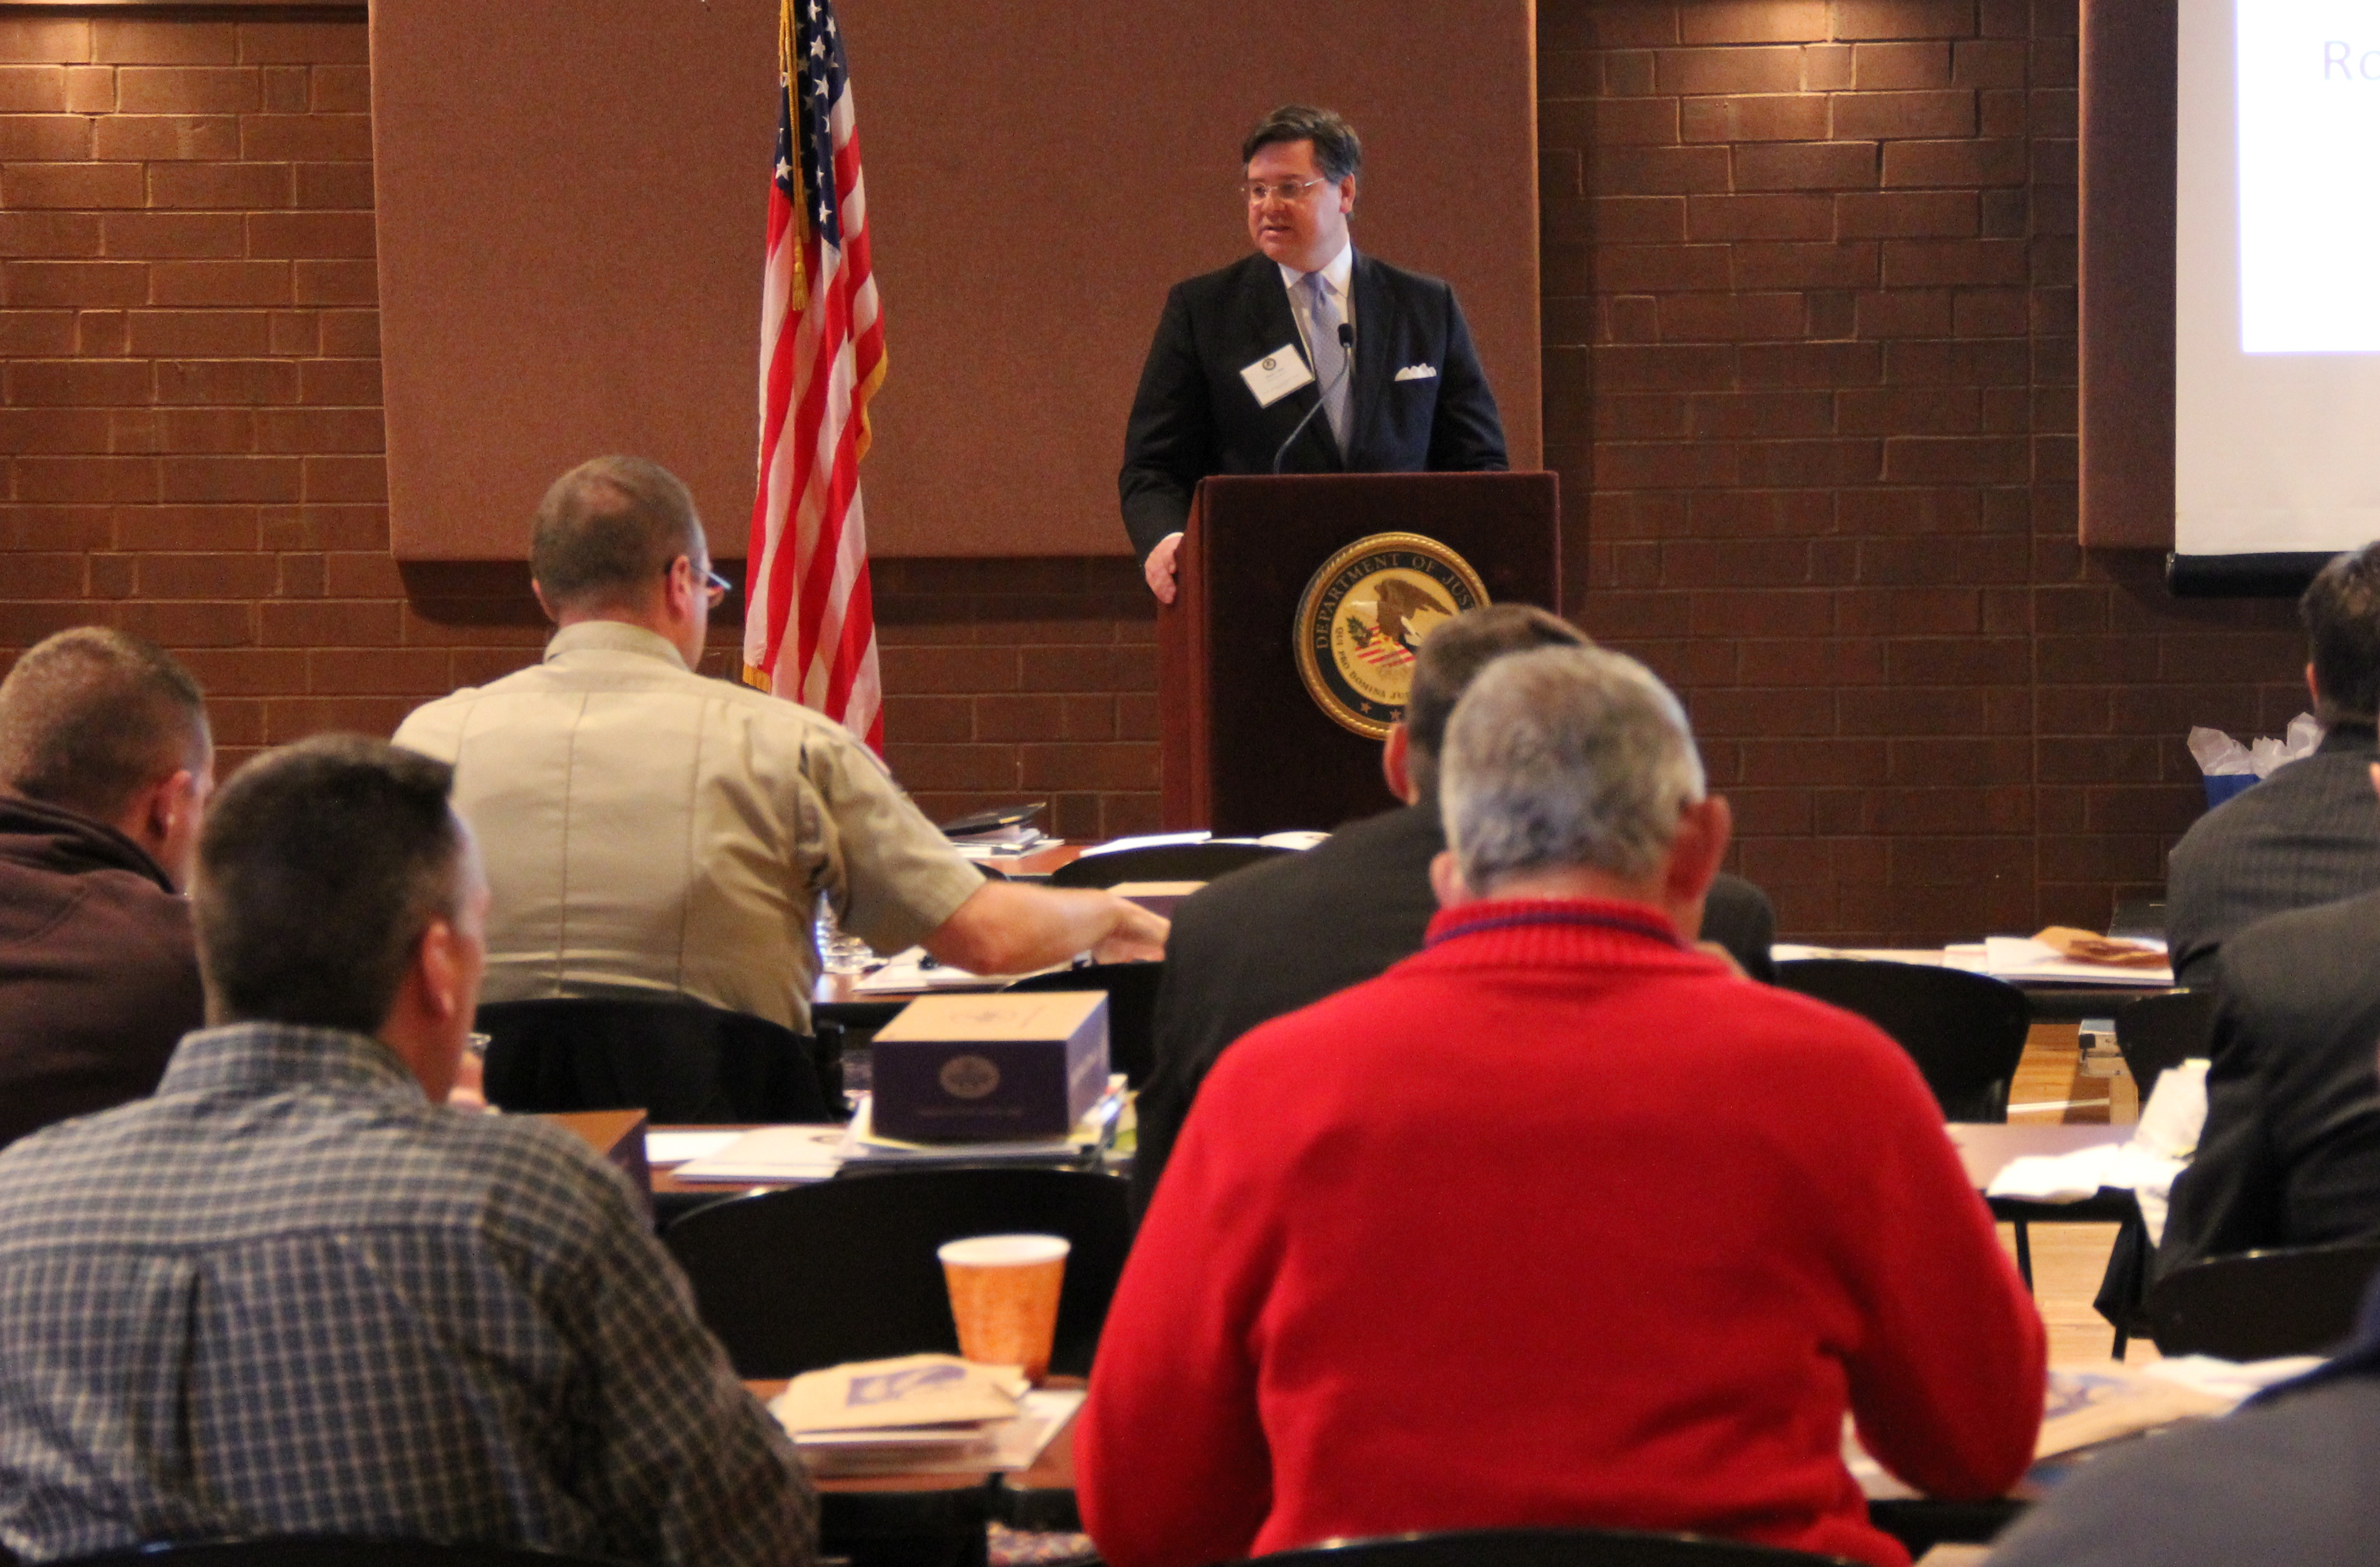 U.S. Attorney Hale speaks at the law enforcement training session in Owensboro, Kentucky